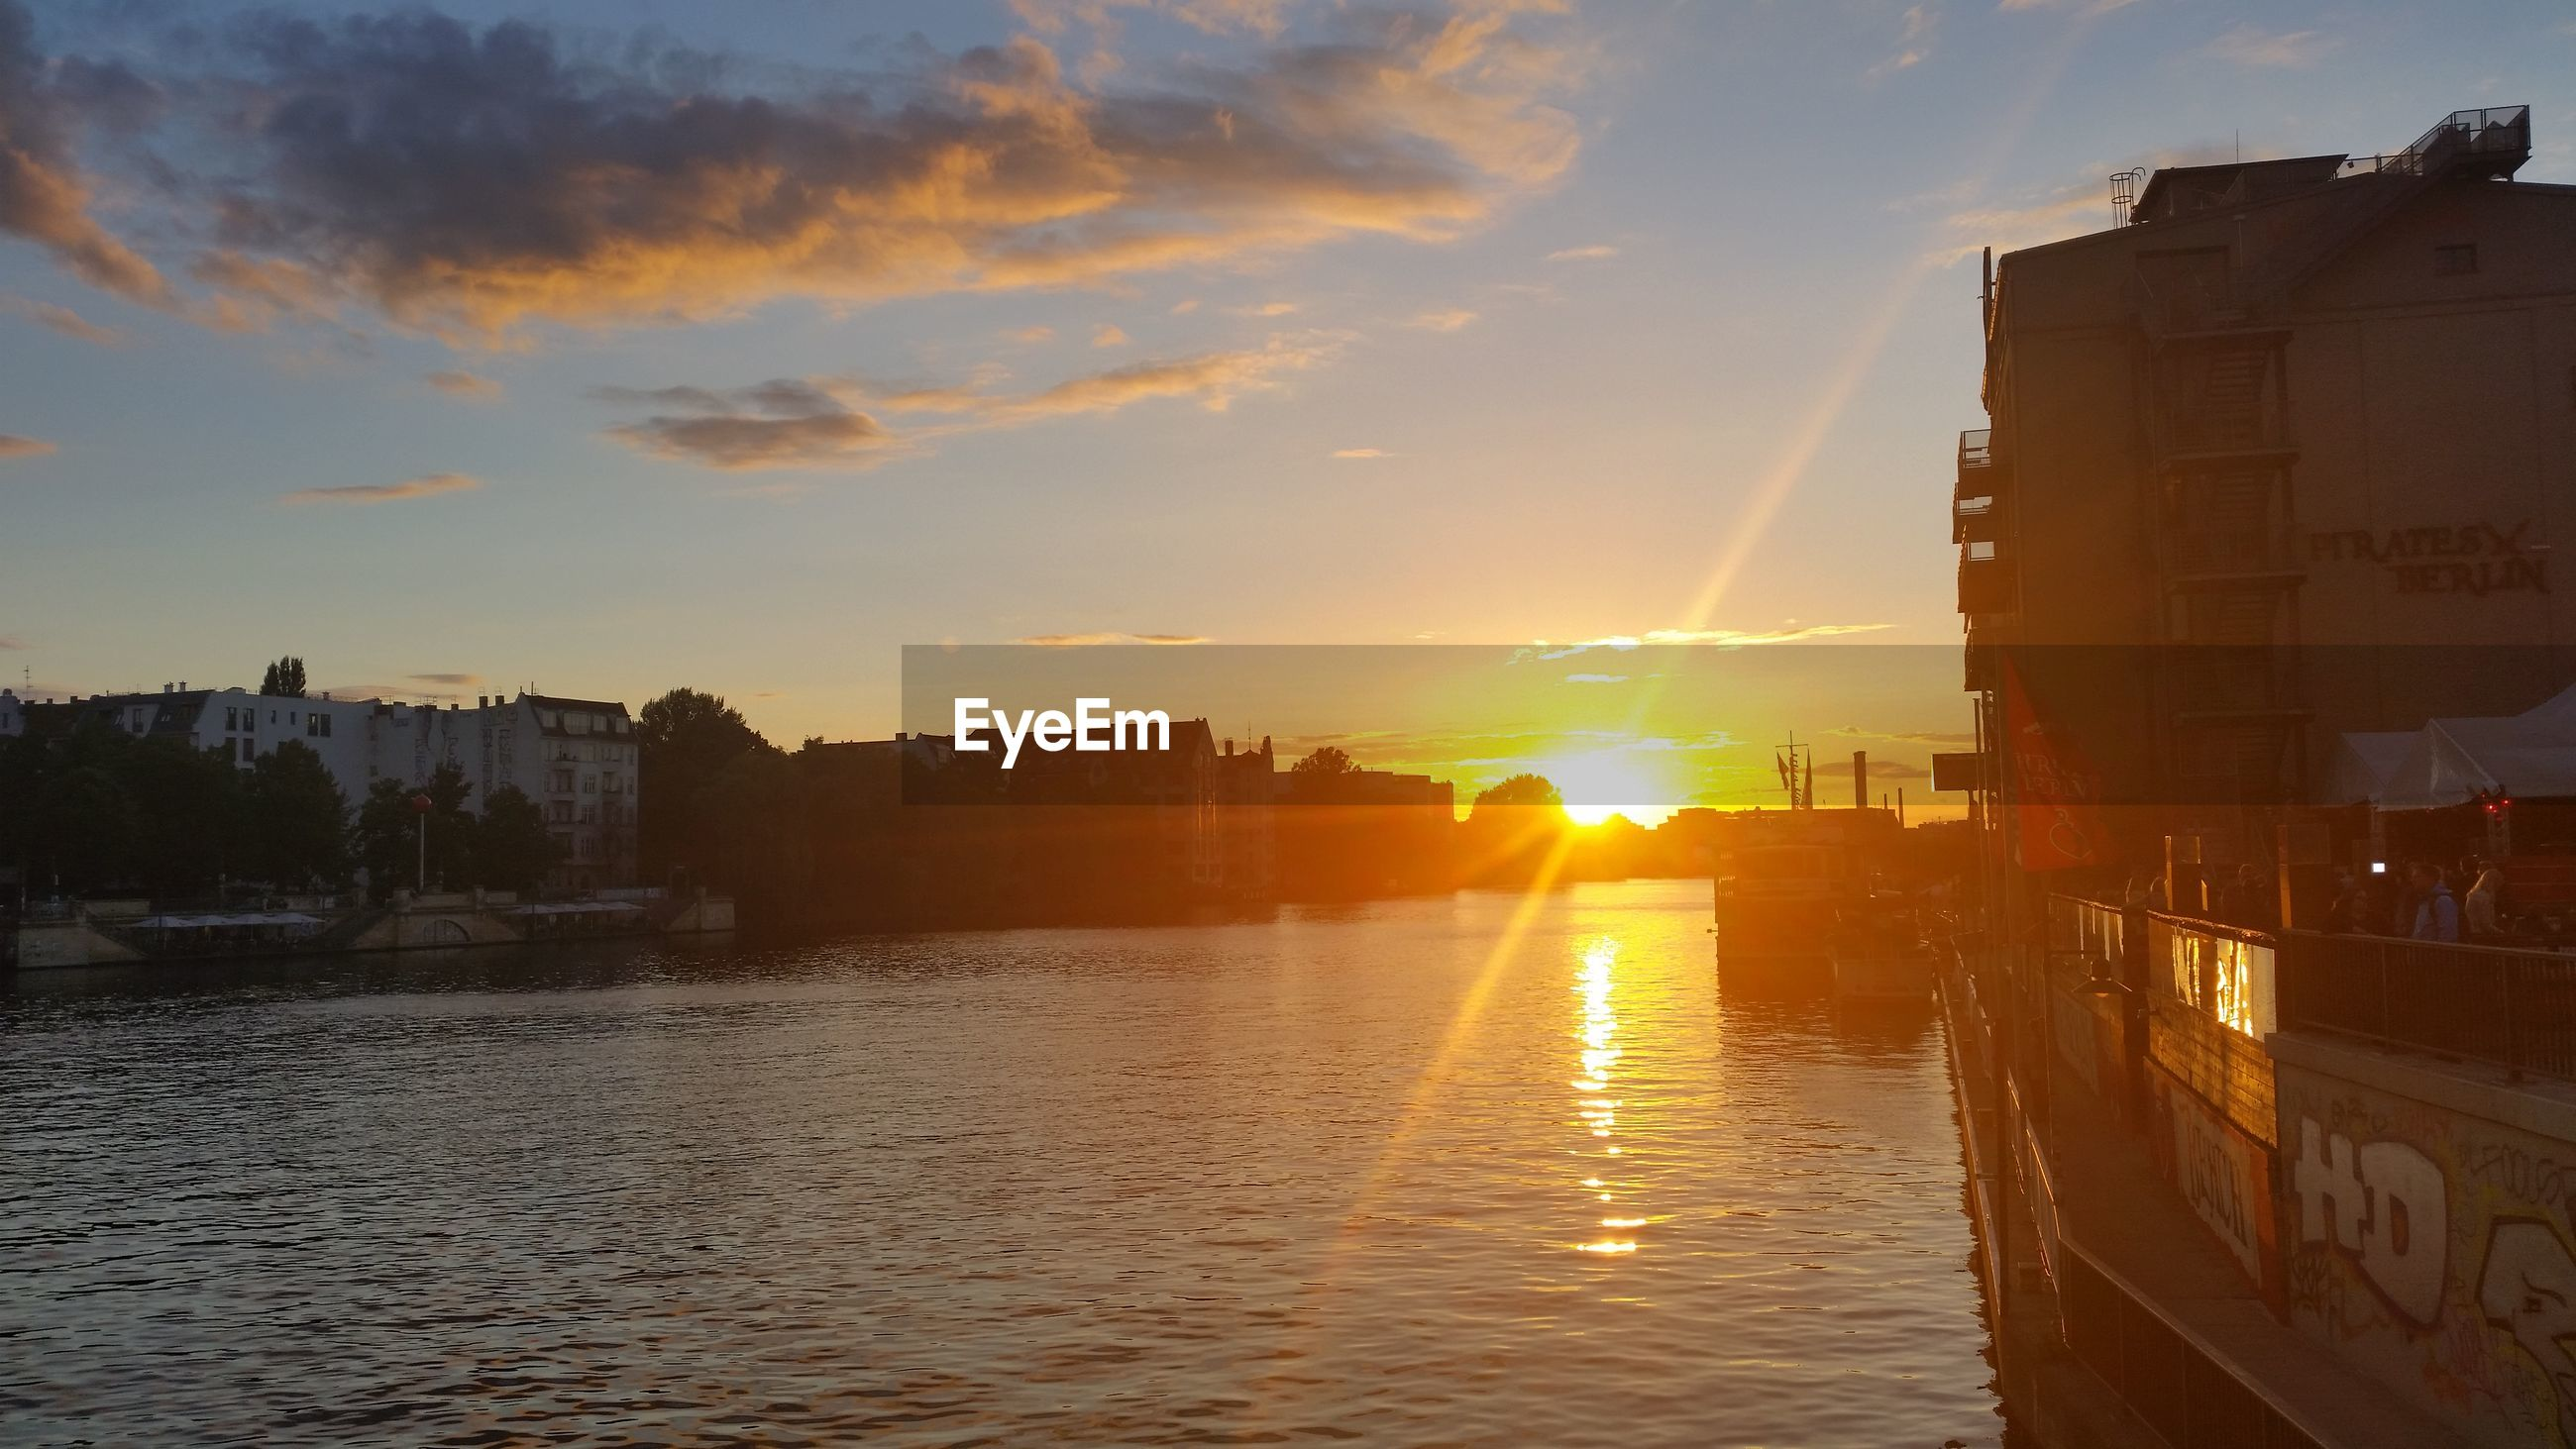 building exterior, architecture, built structure, sunset, water, sun, city, river, sunlight, waterfront, sunbeam, residential structure, canal, lens flare, building, sky, orange color, city life, cityscape, residential district, outdoors, shining, scenics, bright, no people, sea, cloud - sky